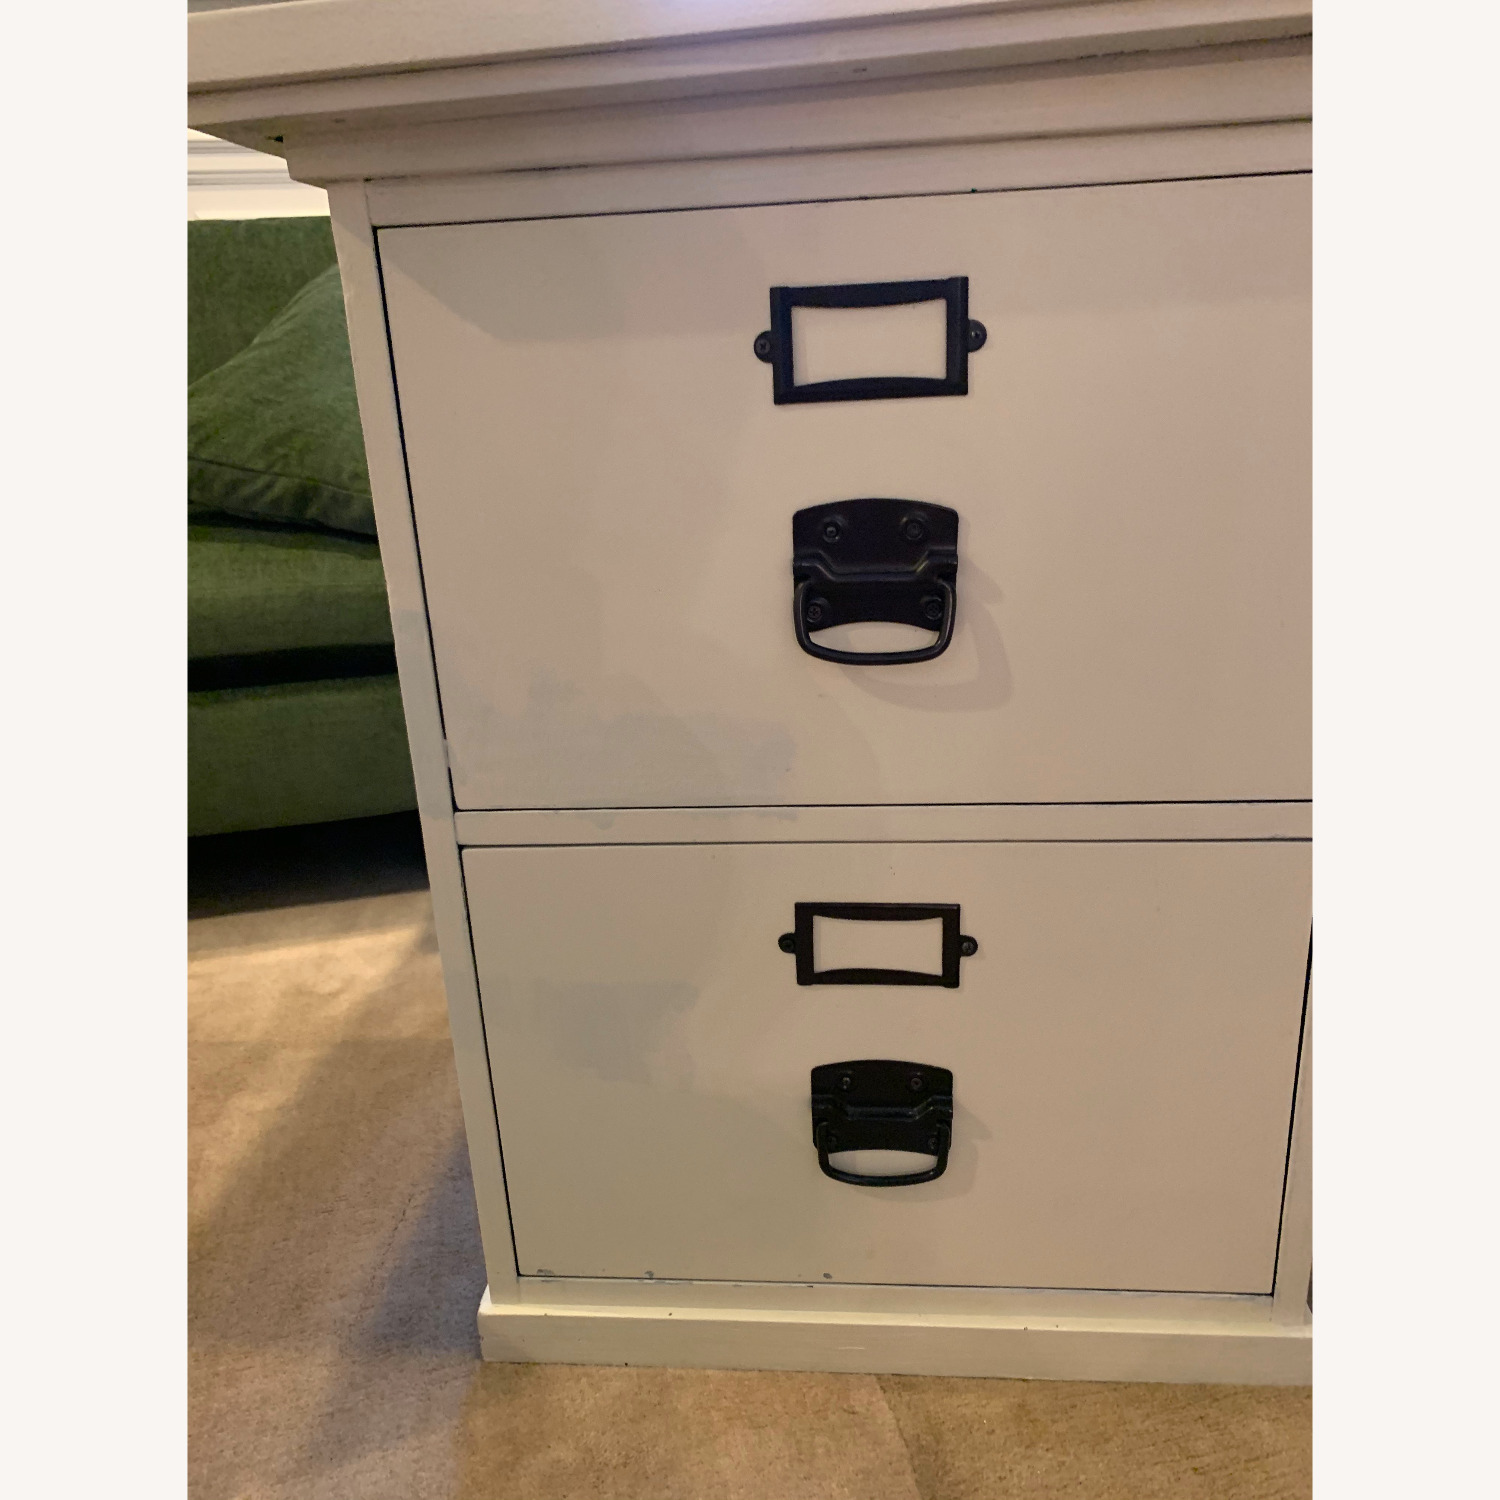 Pottery Barn Home Office Desk with 2 Drawer Cabinets - image-4